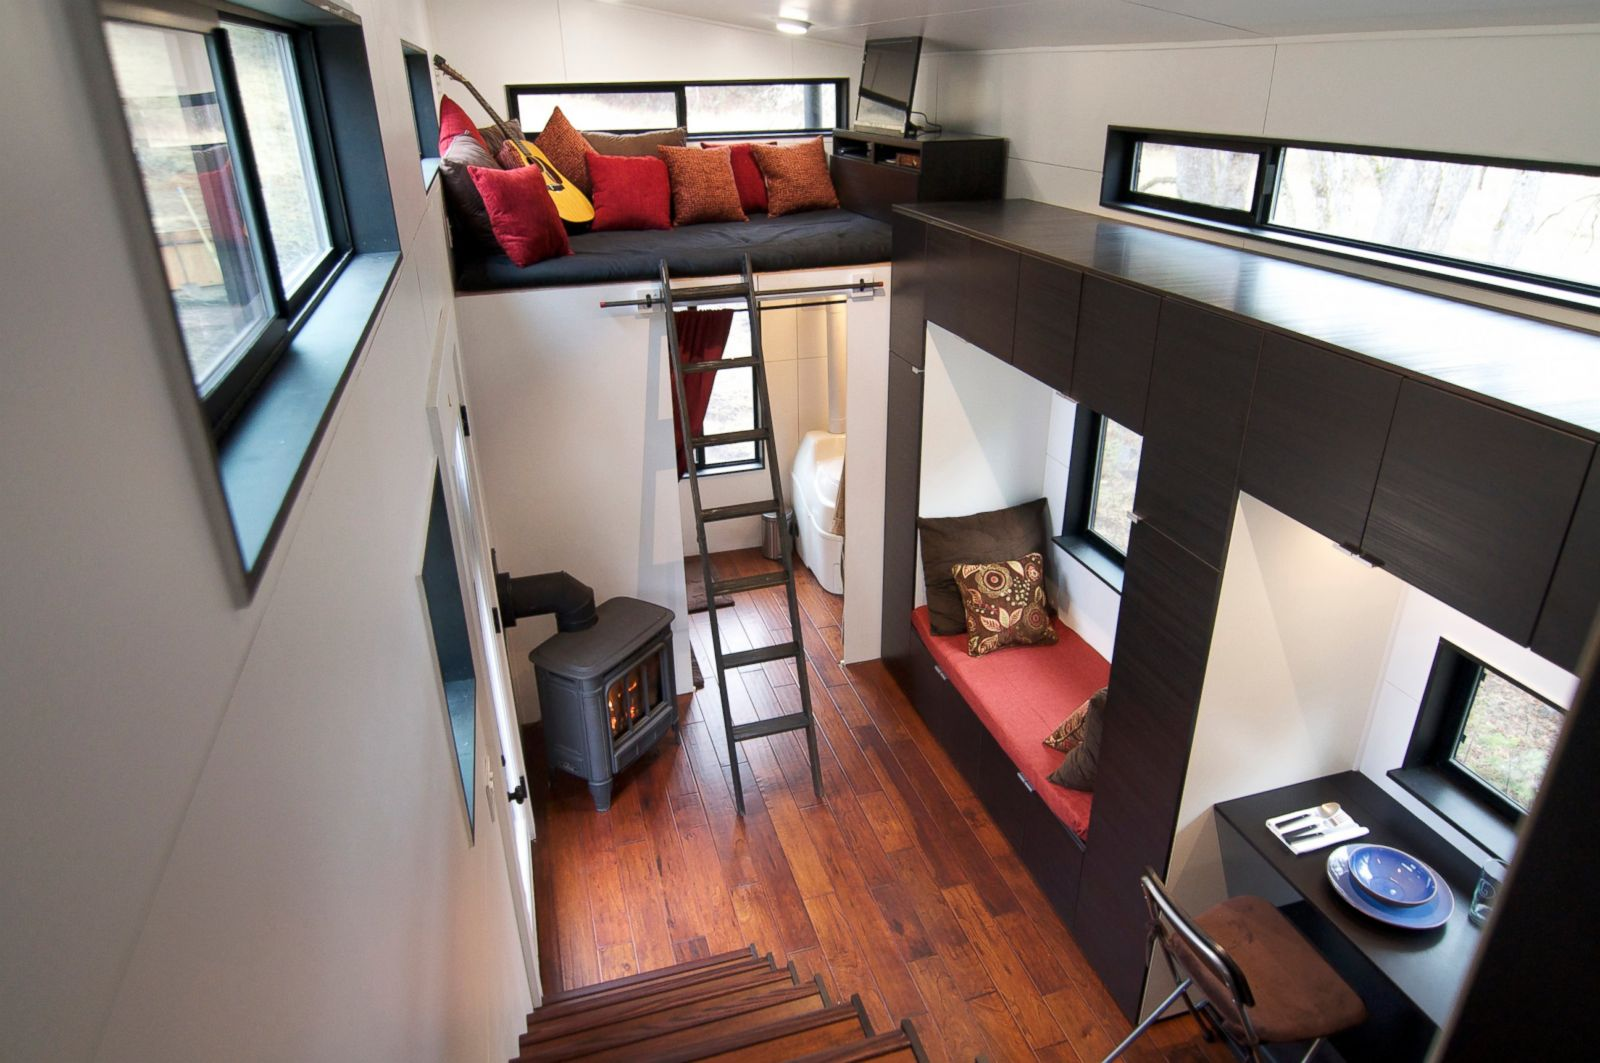 tiny houses inside one familys dream home photos image 1 abc news - Tiny House Inside